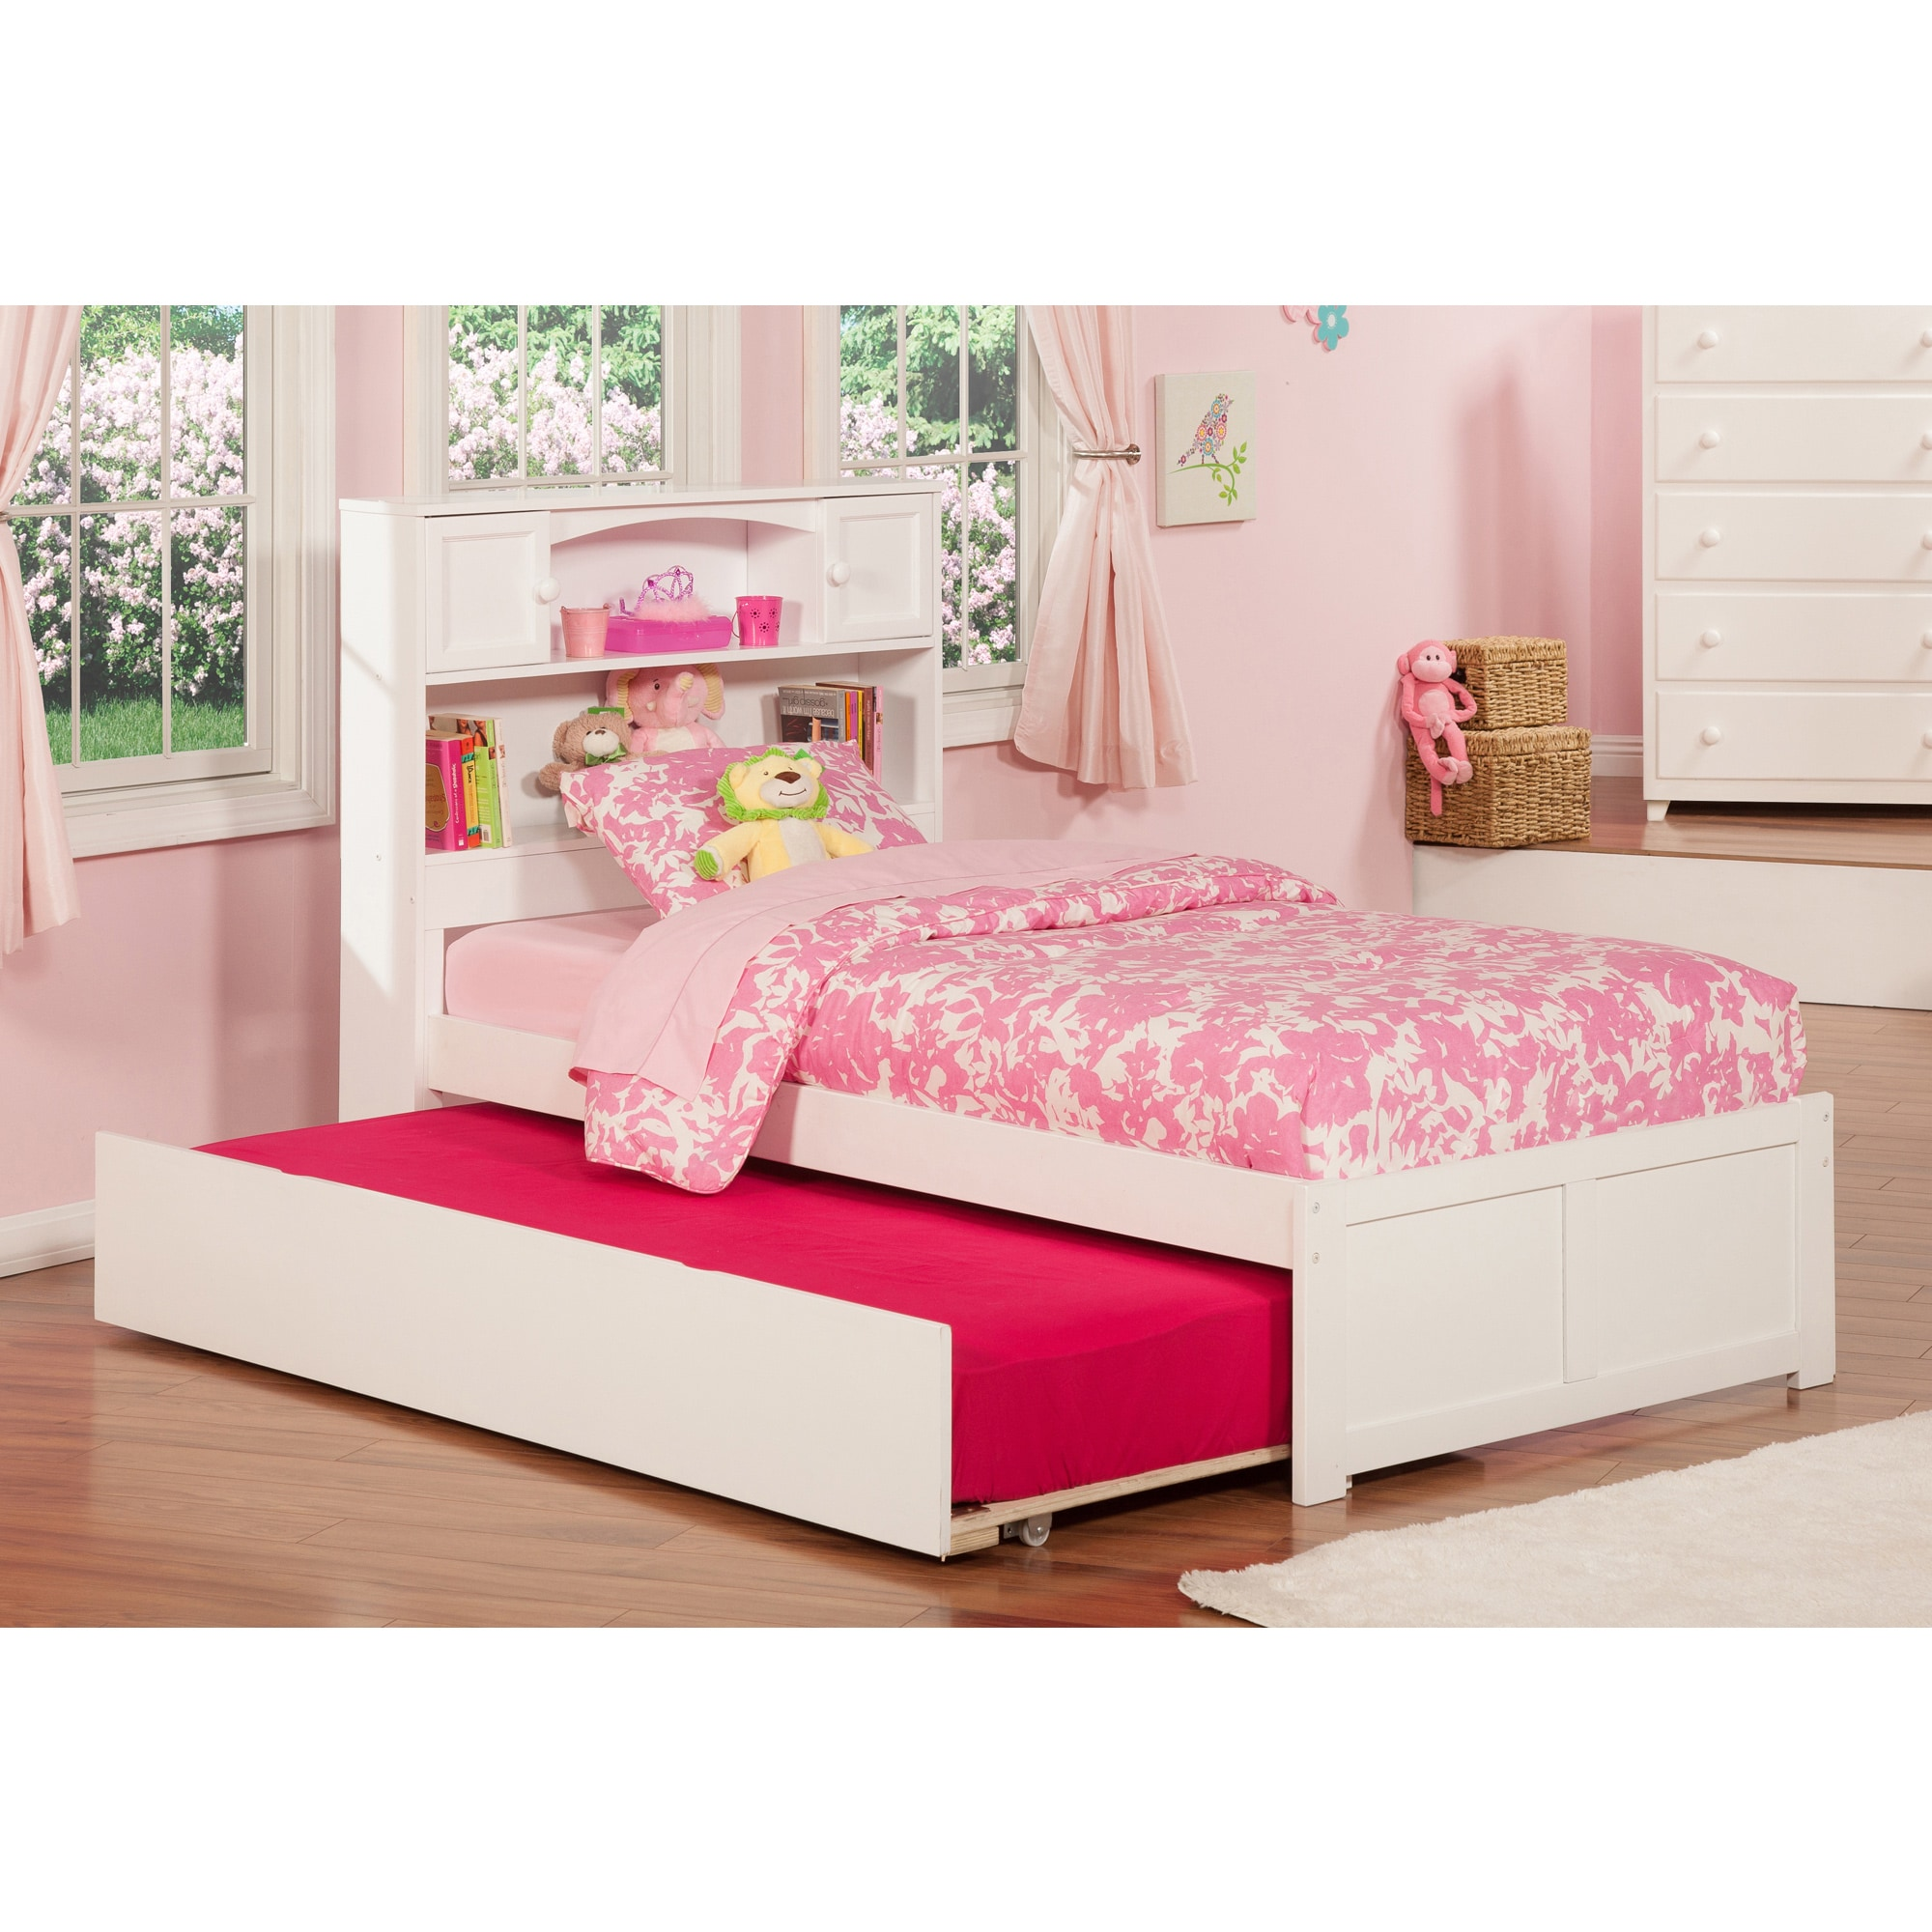 Atlantic Newport White Twin-sized Flat-panel Bed with Foo...